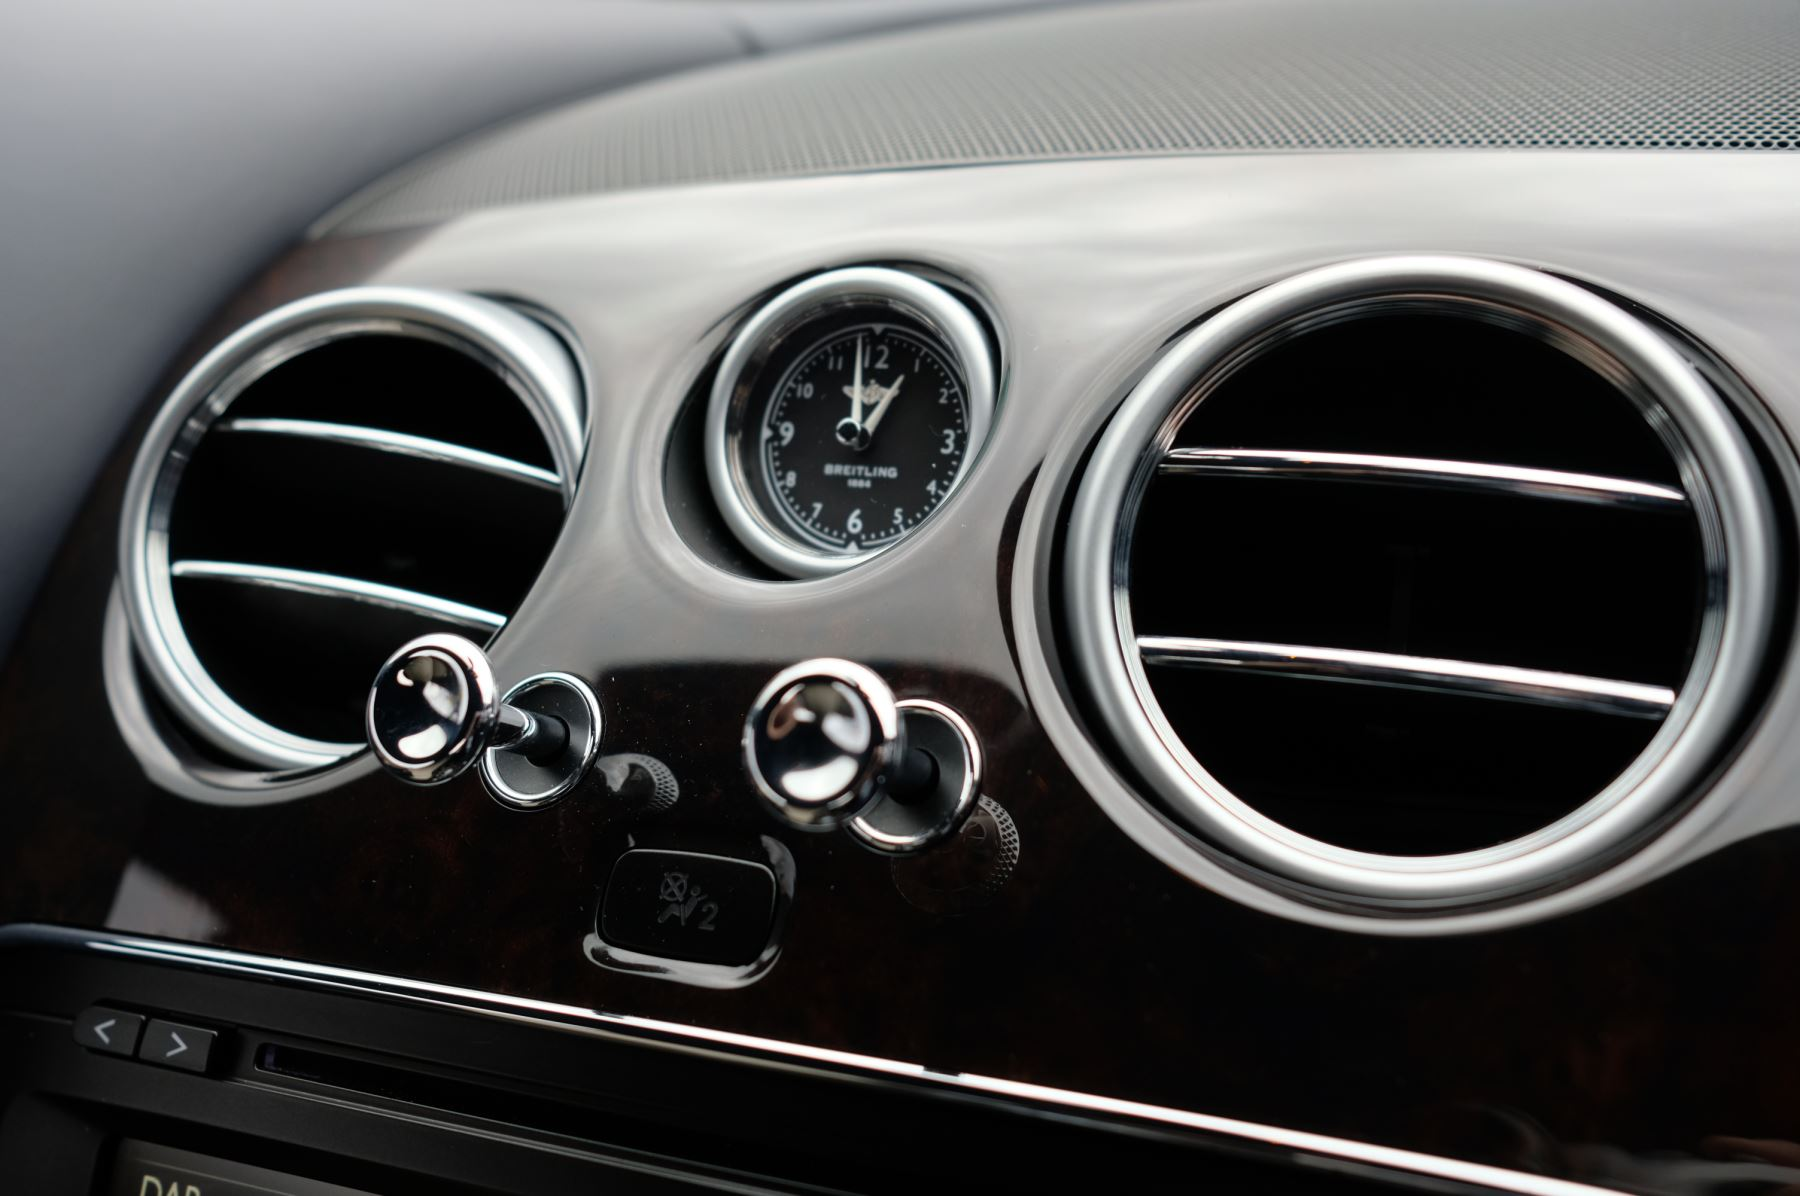 Bentley Continental GT 6.0 W12 [635] Speed - 21 inch Directional Sports Alloys - Ventilated Front Seats with Massage image 22